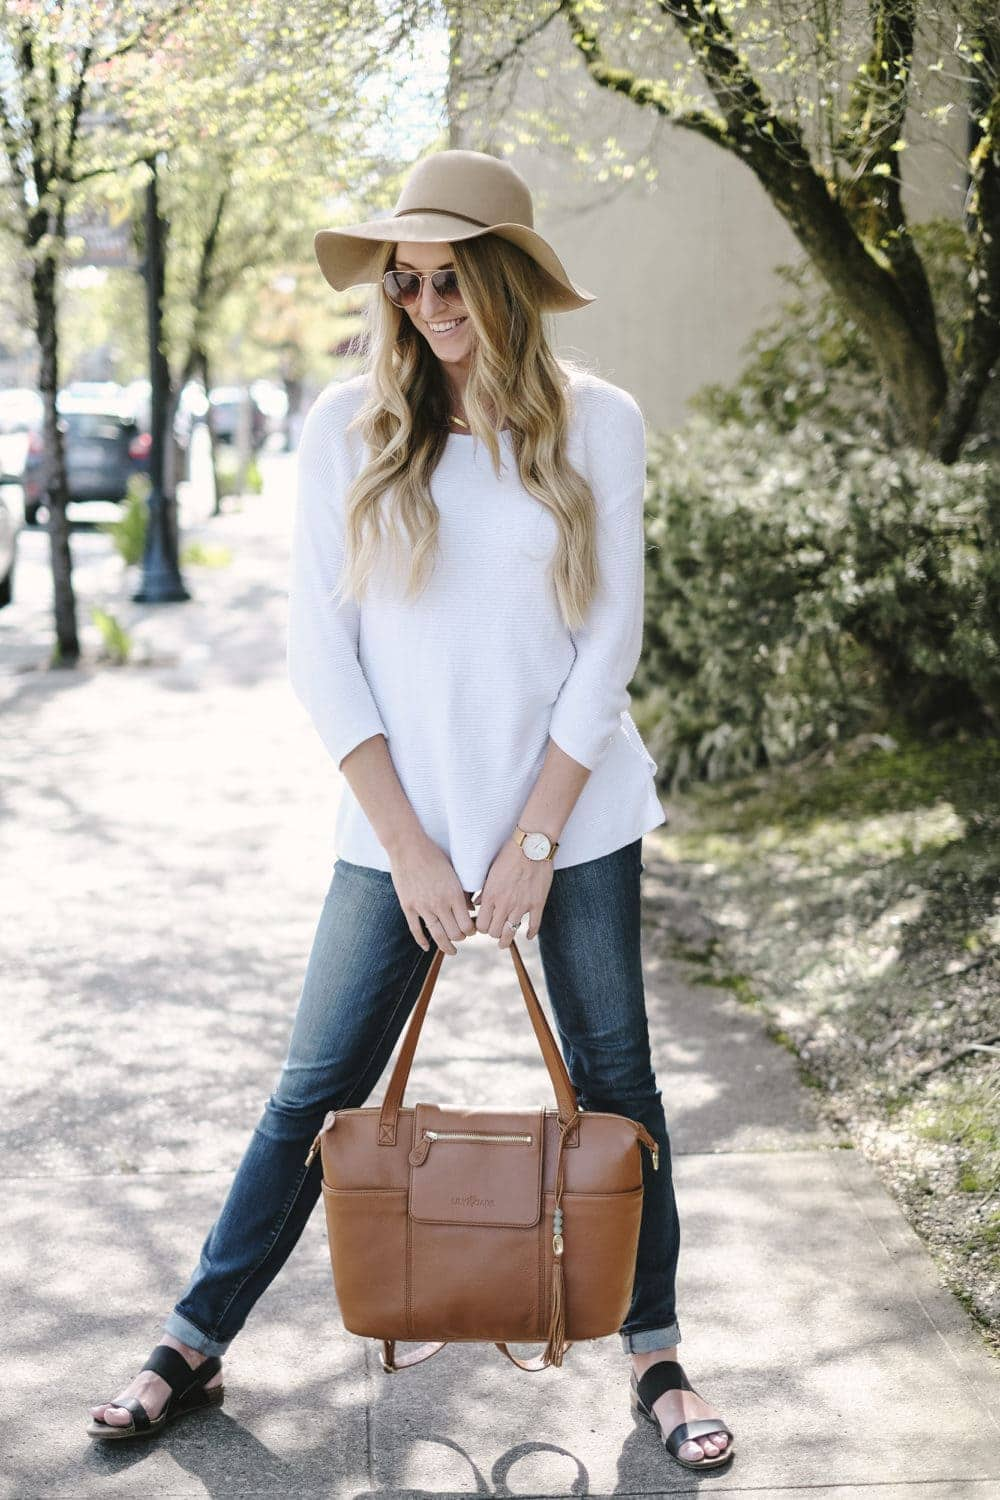 diaper bag review featuring a blonde woman holding leather bag on sidewalk